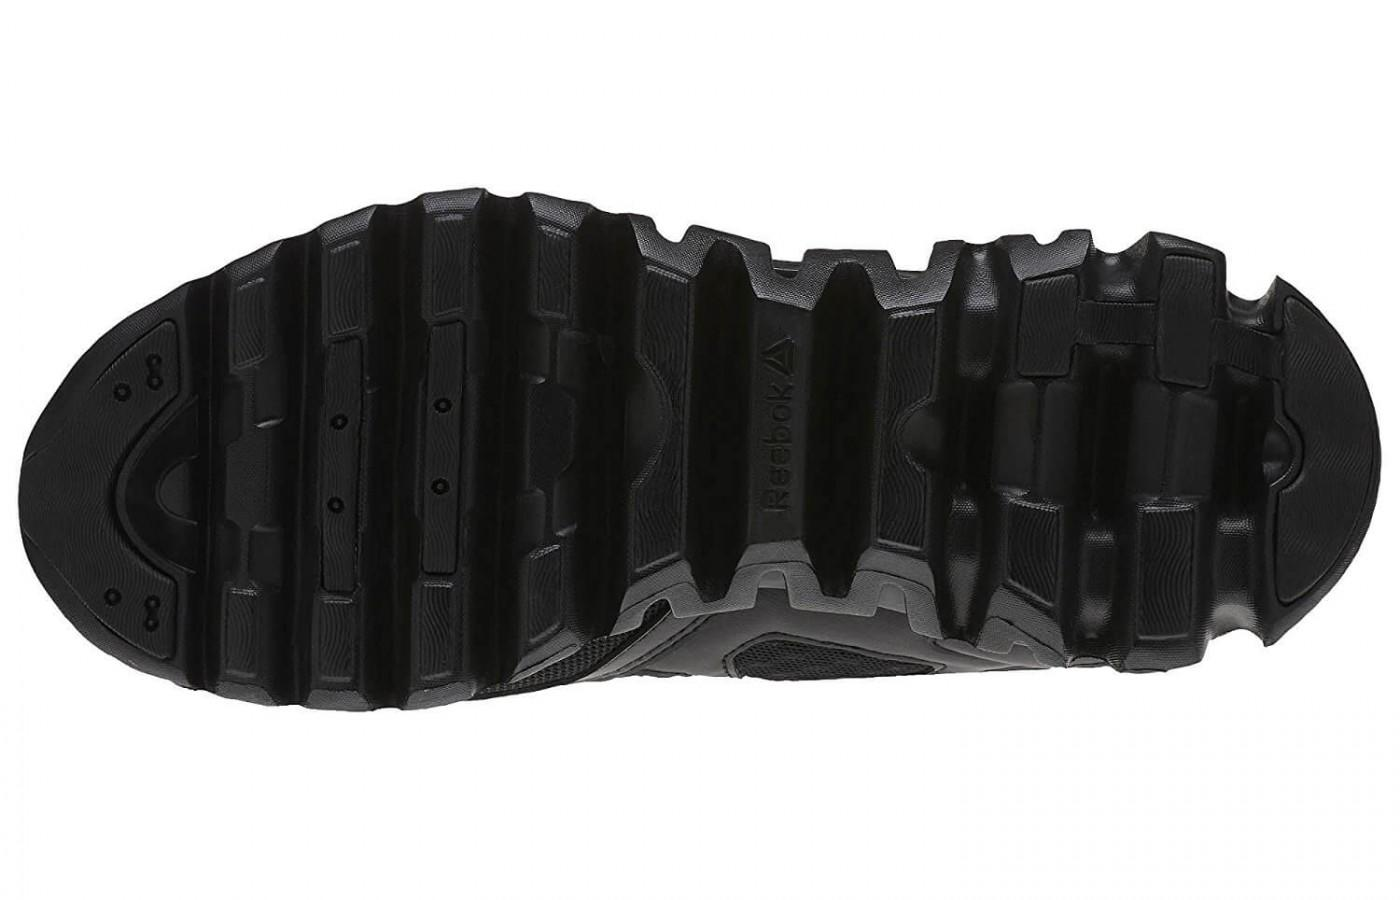 The outsold features a durable material with added traction